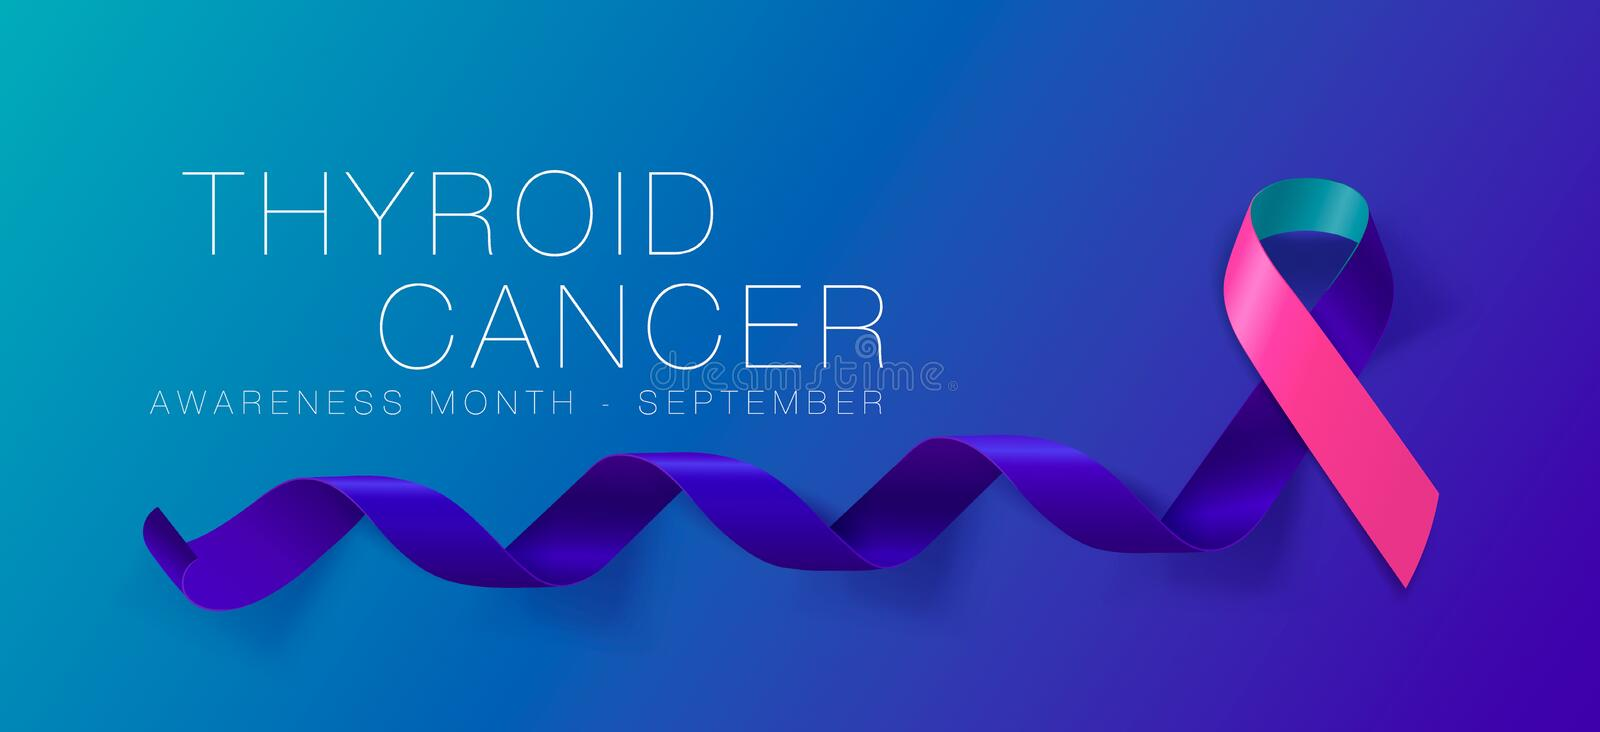 Thyroid Cancer Awareness Calligraphy Poster Design. Realistic Teal and Pink and Blue Ribbon. September is Cancer Awareness Month. vector illustration